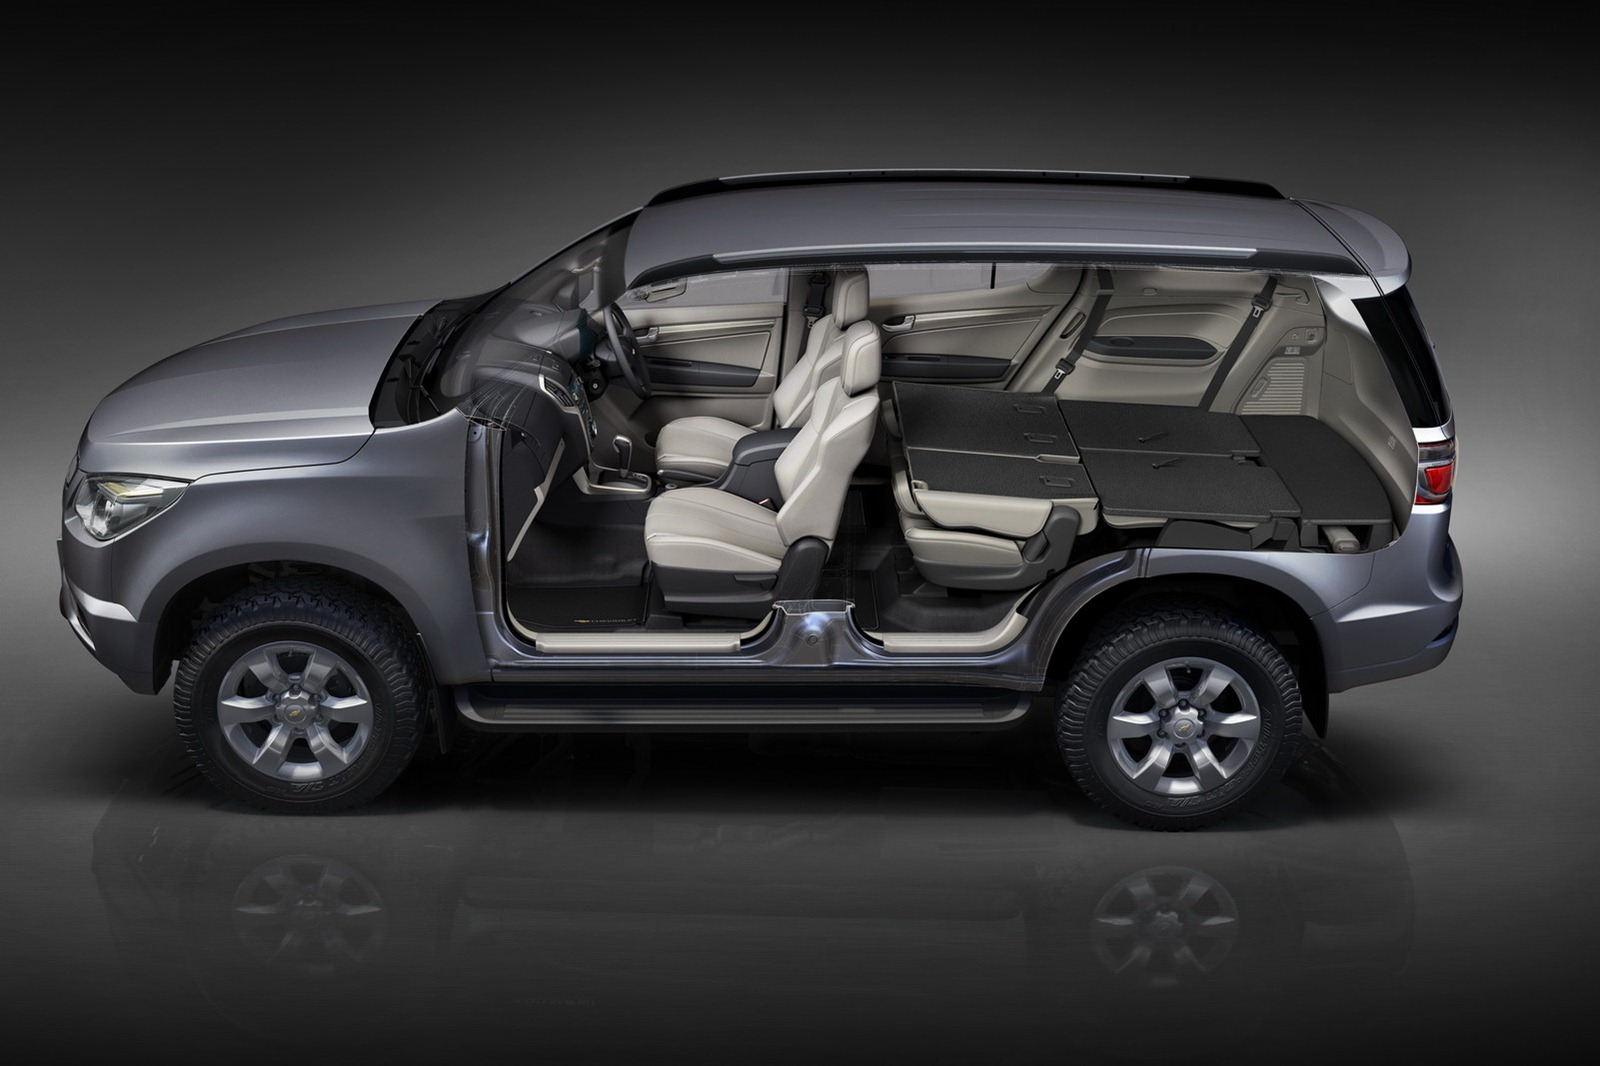 New 2013 Chevrolet Trailblazer Presented US Launch